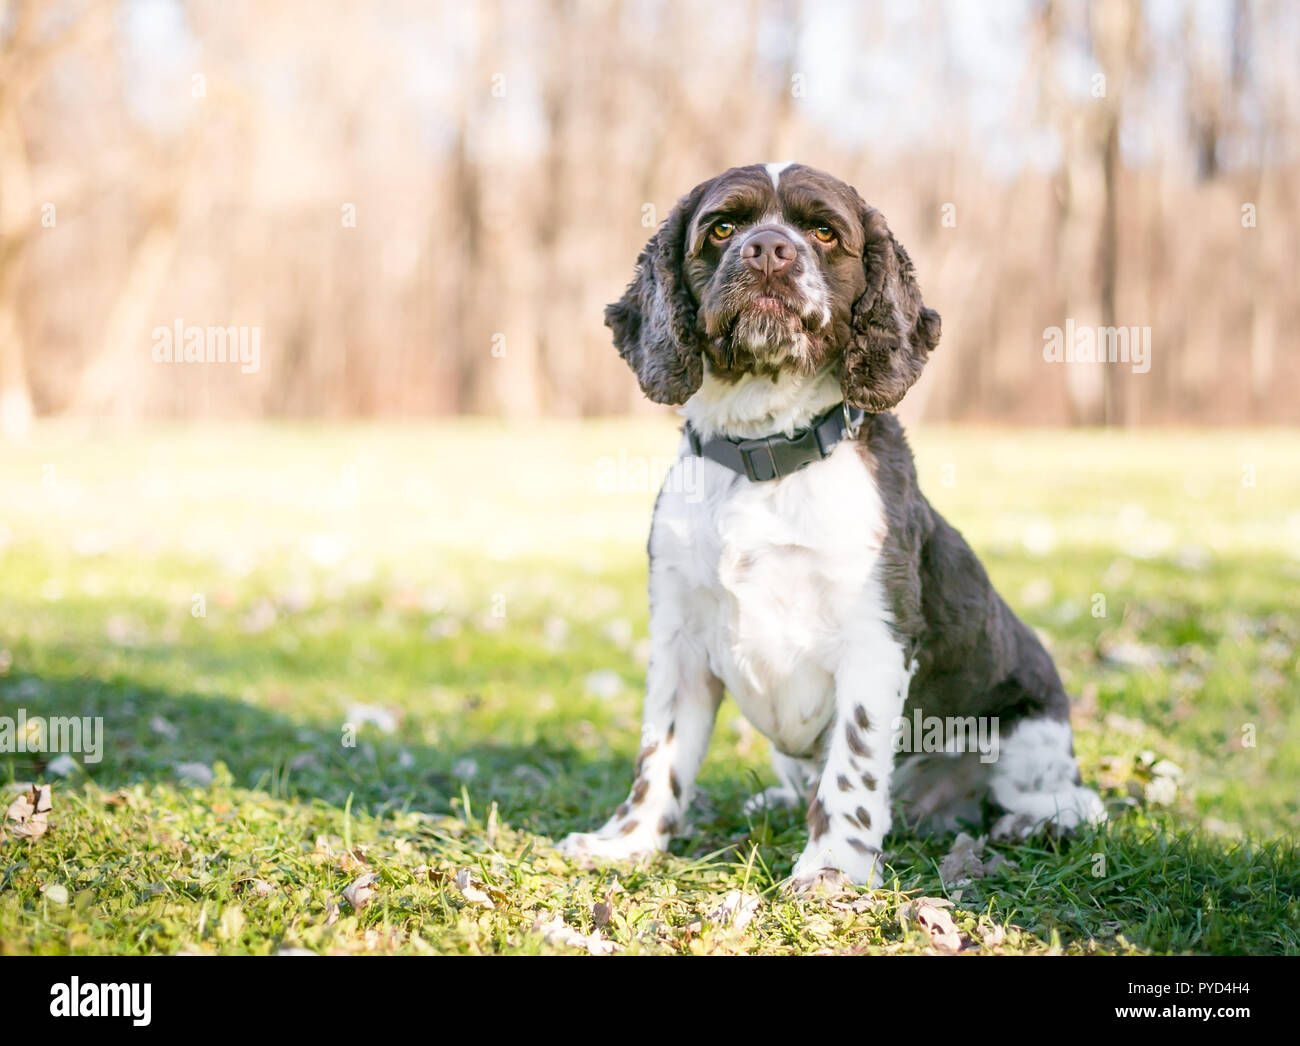 A Cocker Spaniel dog with brown and white markings sitting outdoors - Stock Image